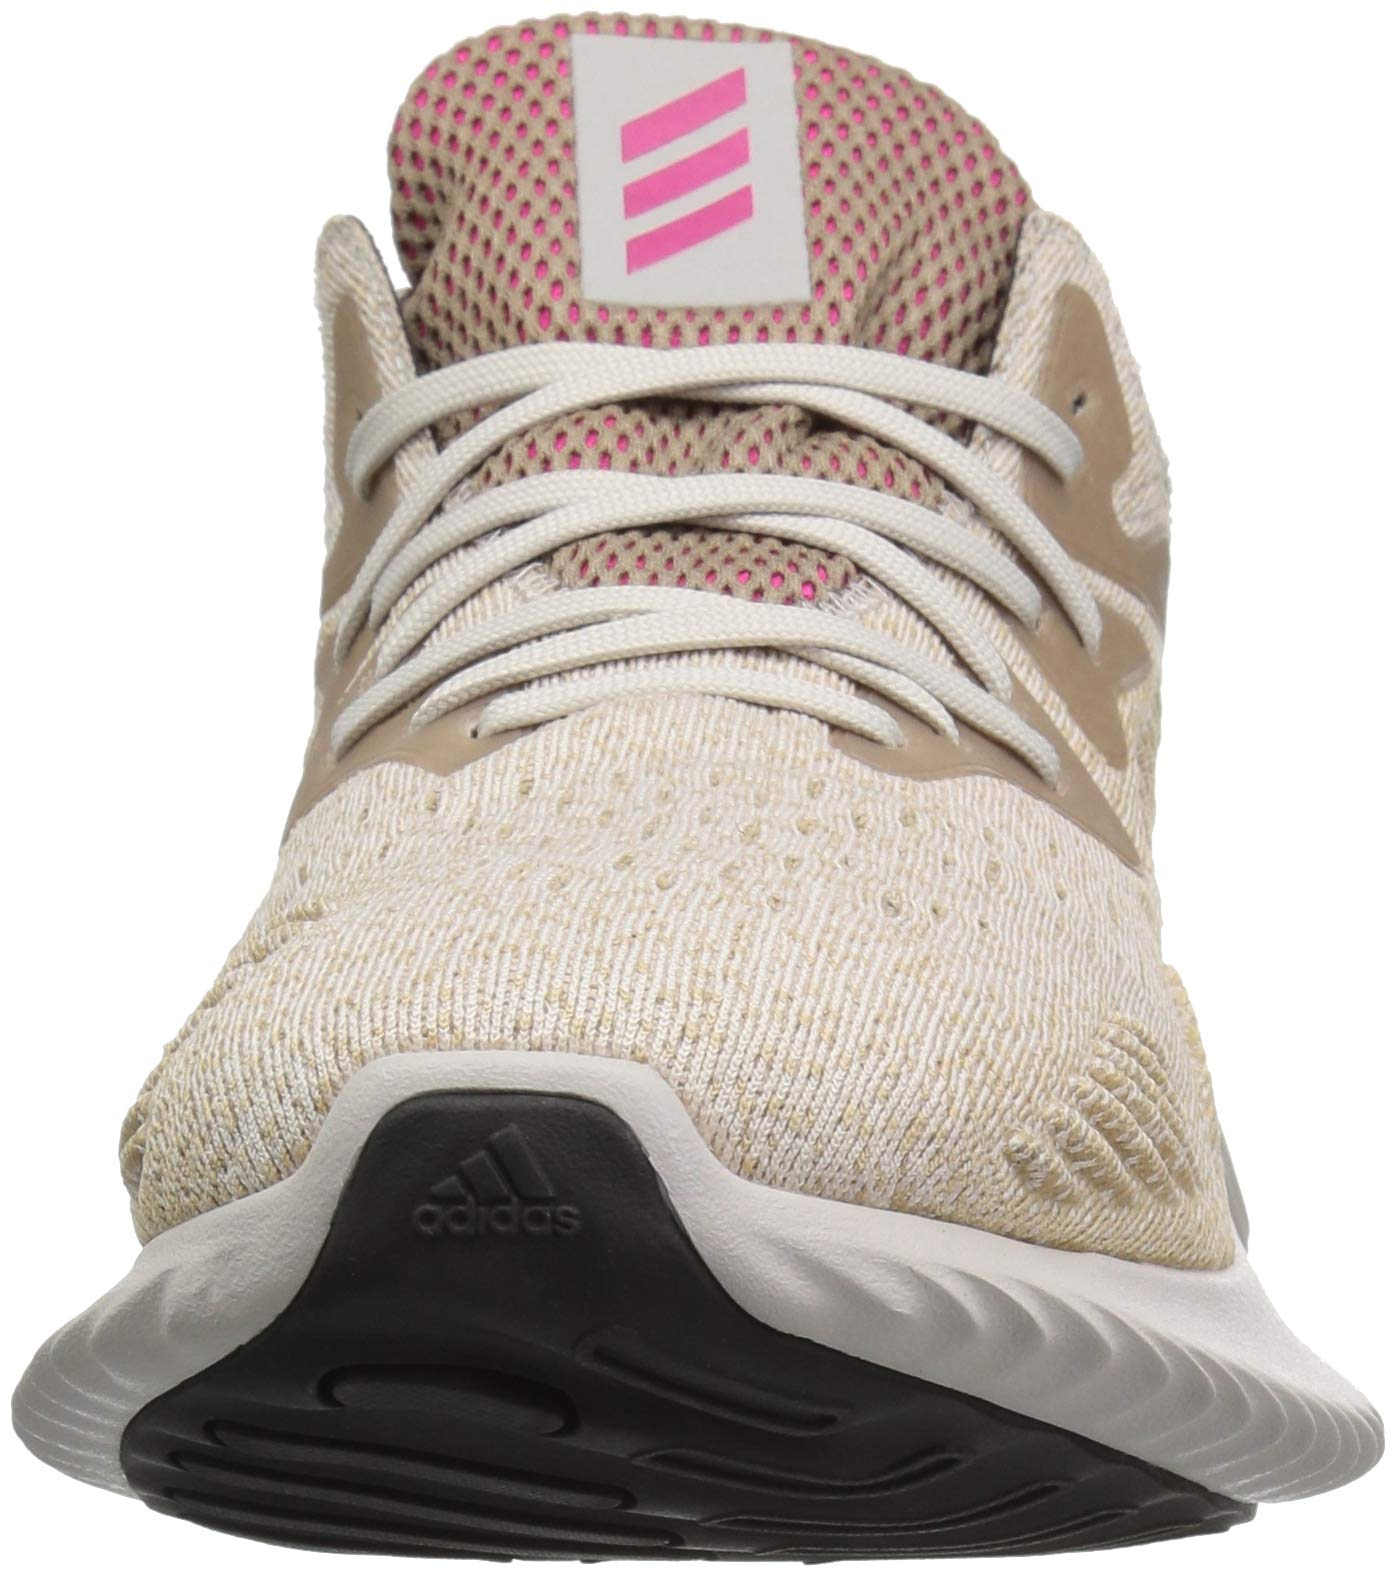 adidas Men's Alphabounce Beyond Running Shoe, Chalk Pearl/Shock Pink/Trace Khaki, 7.5 M US by adidas (Image #4)